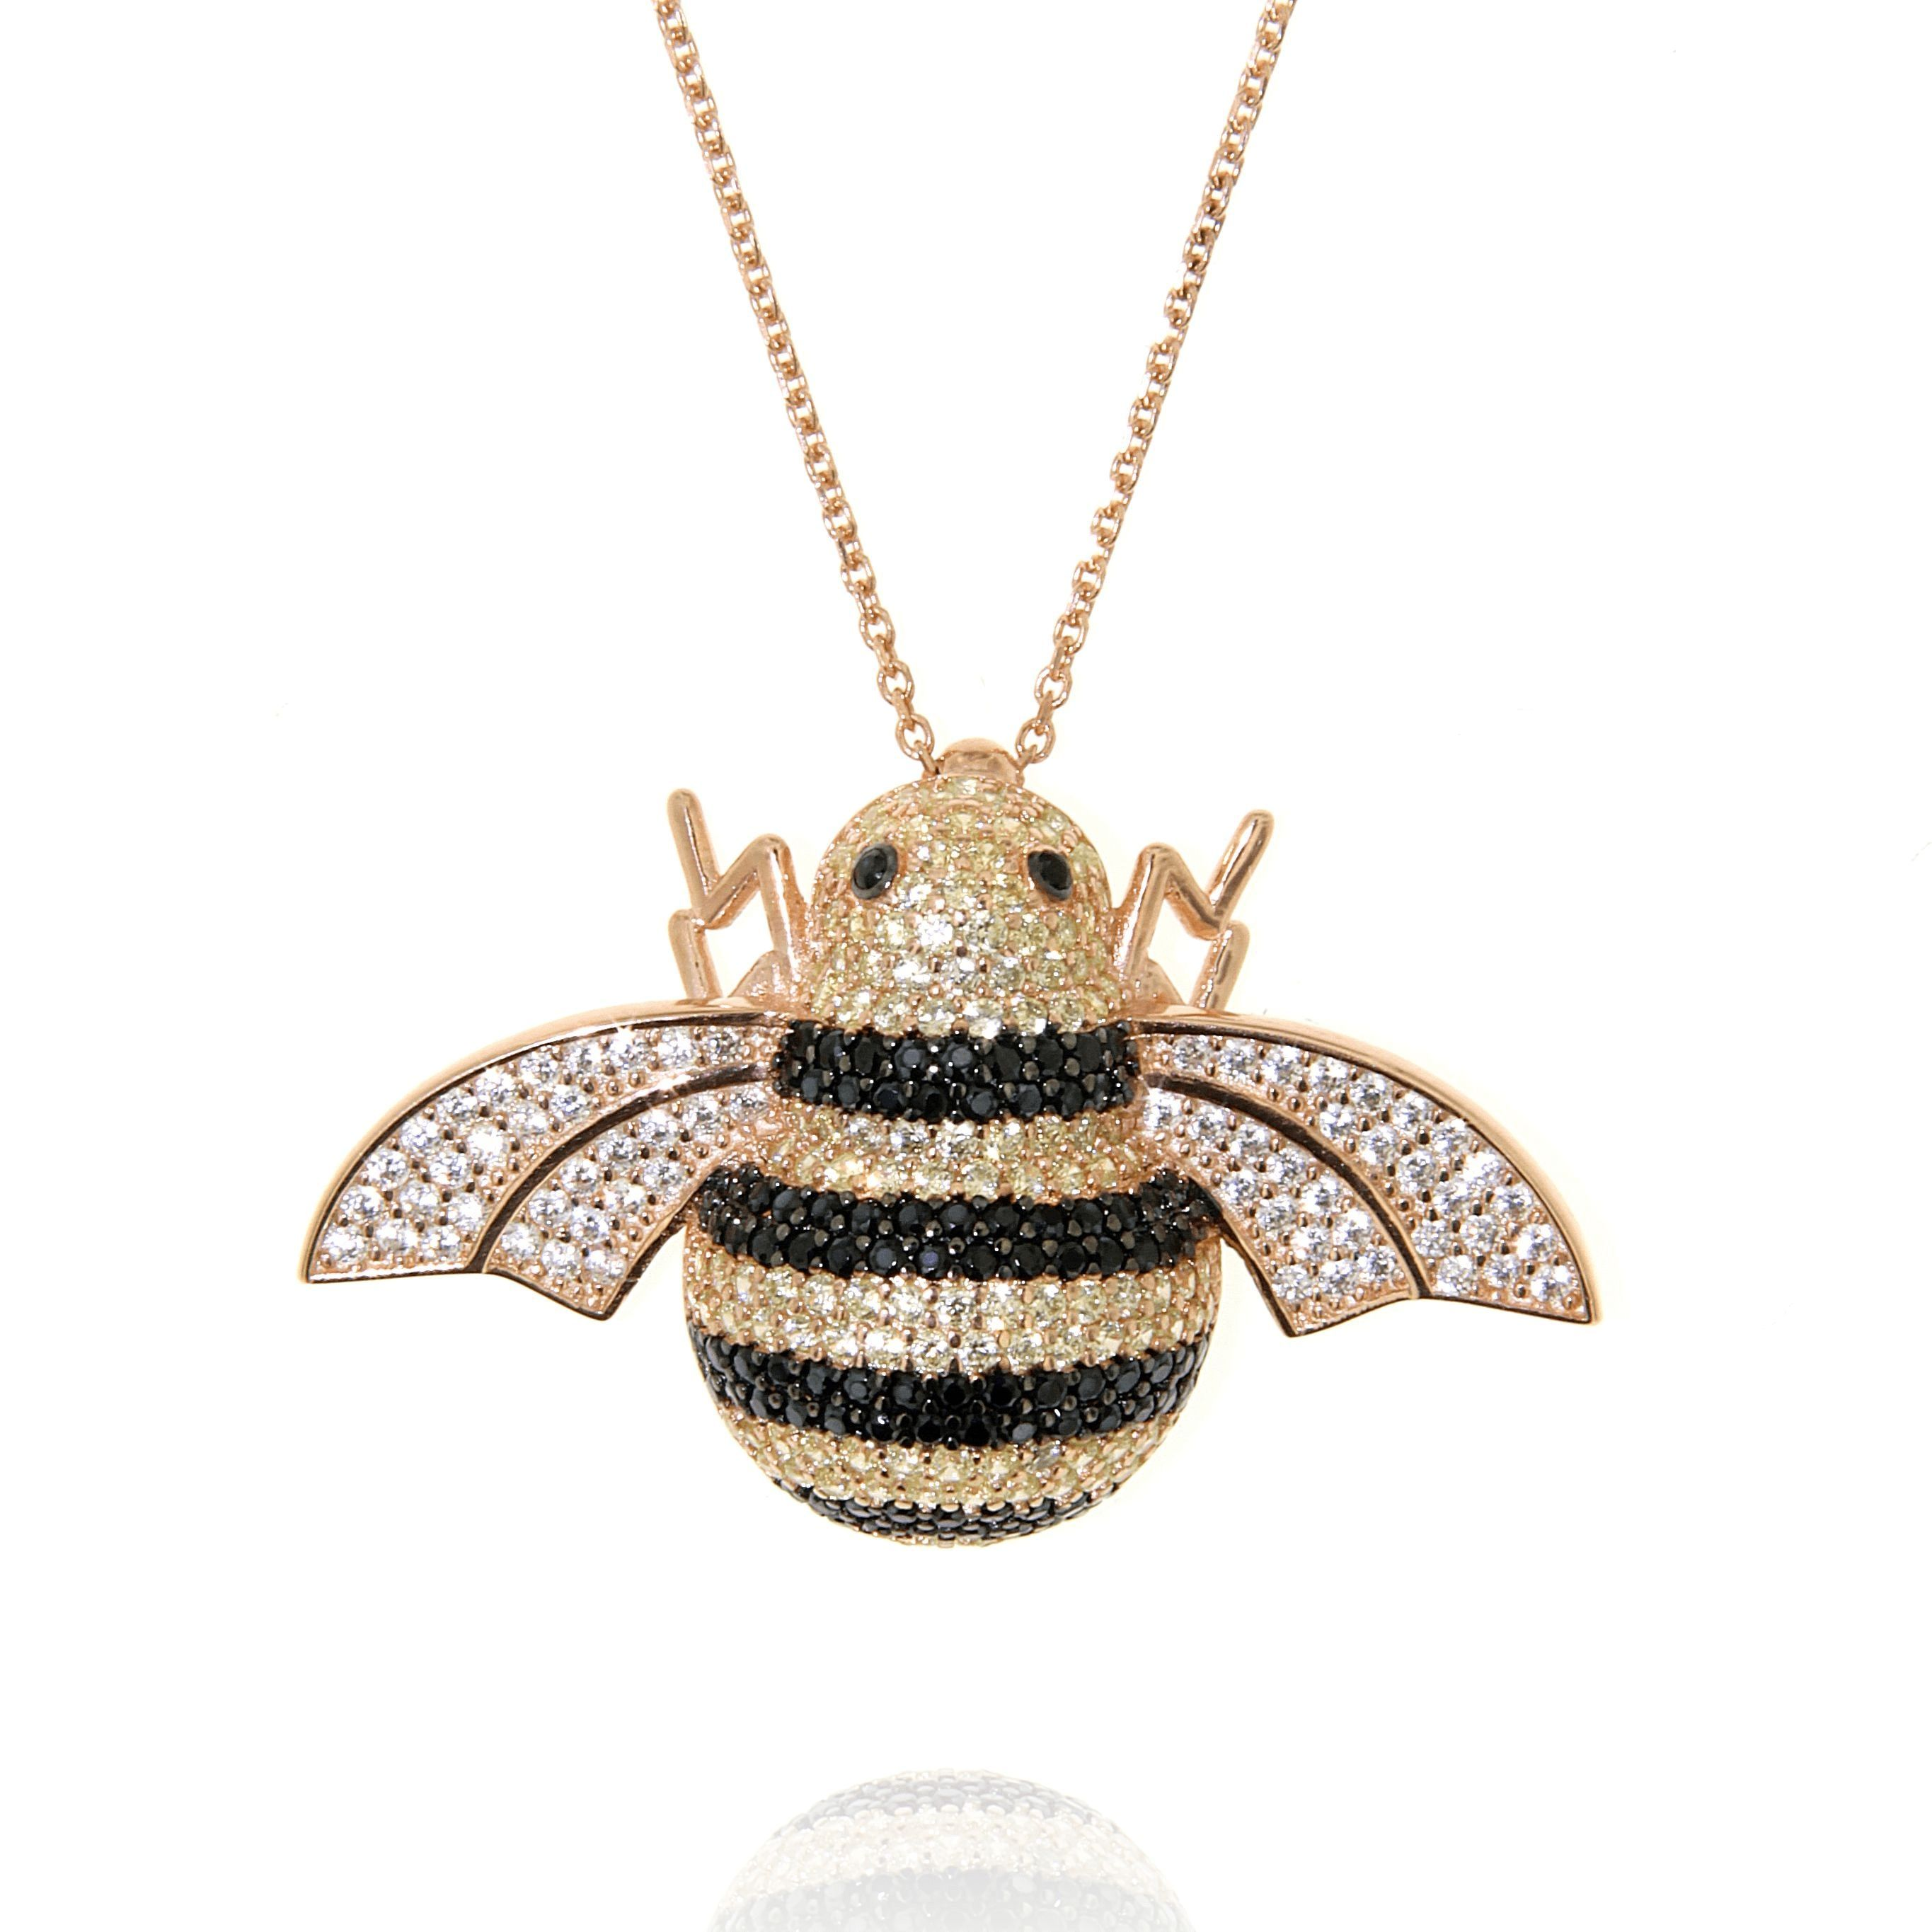 large necklace always silver i what wanted pendant design ornate bee oh info honey product